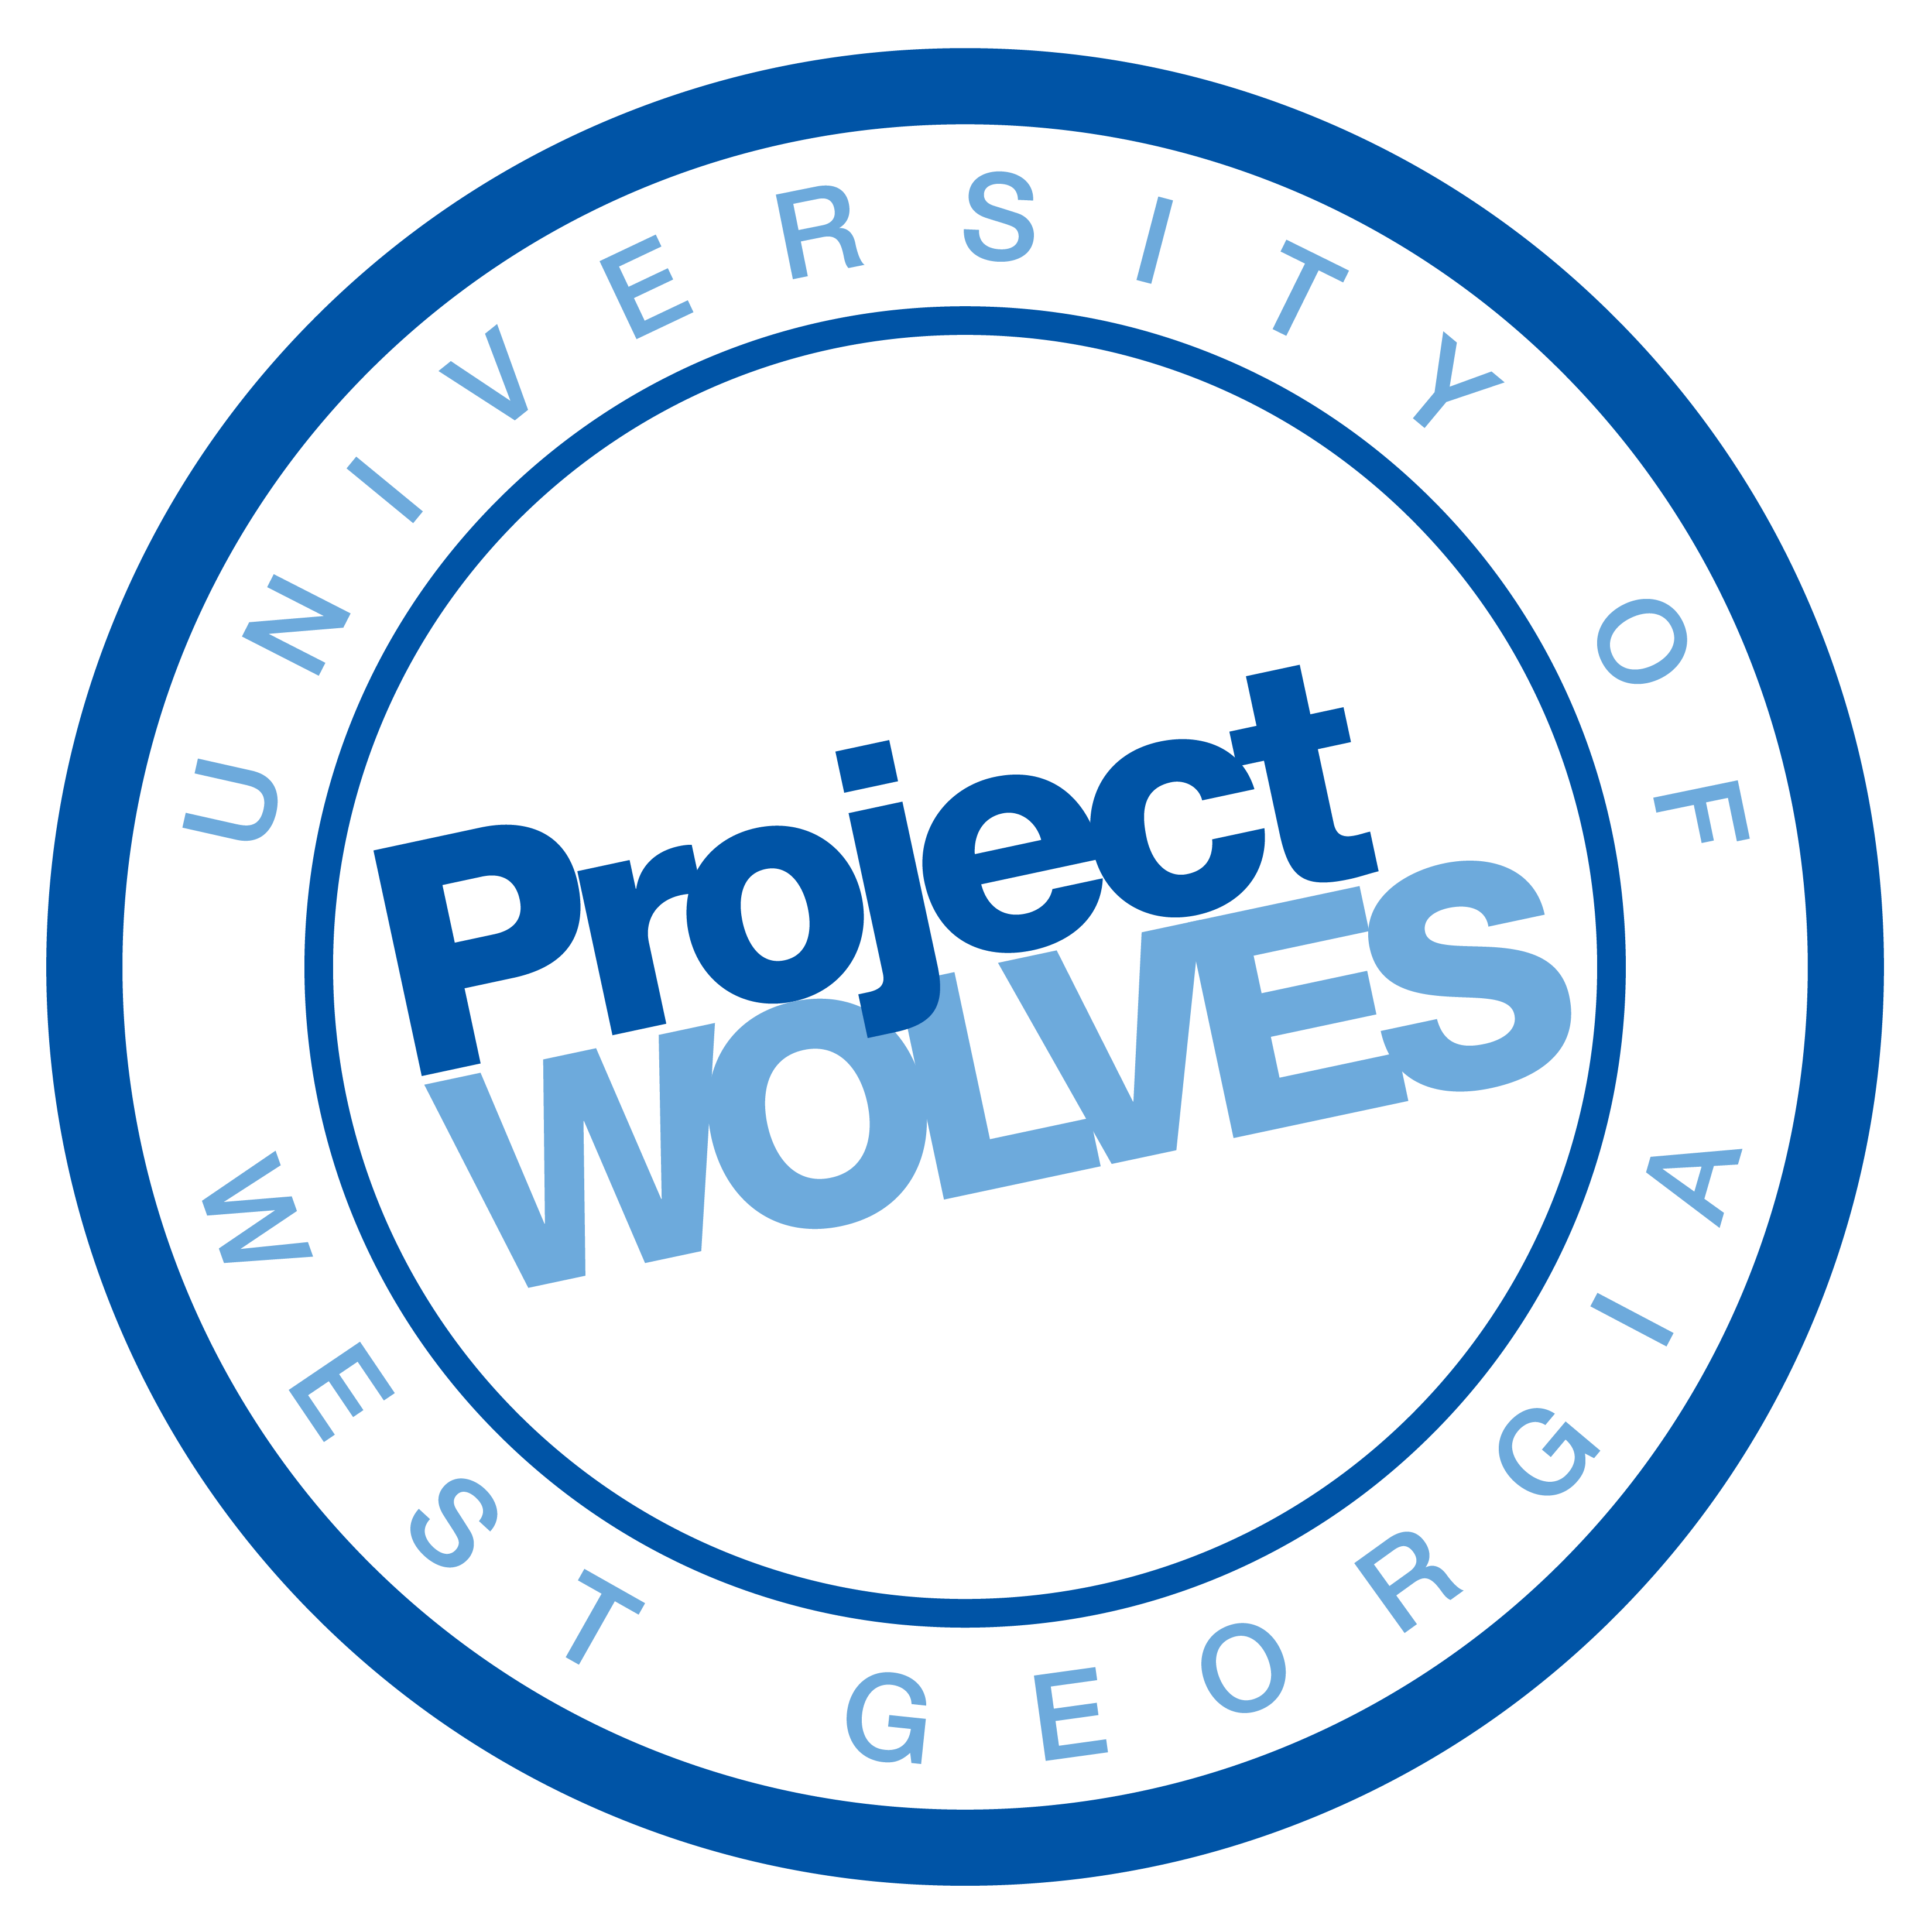 University of West Georgia Project Wolves (Carrolton)